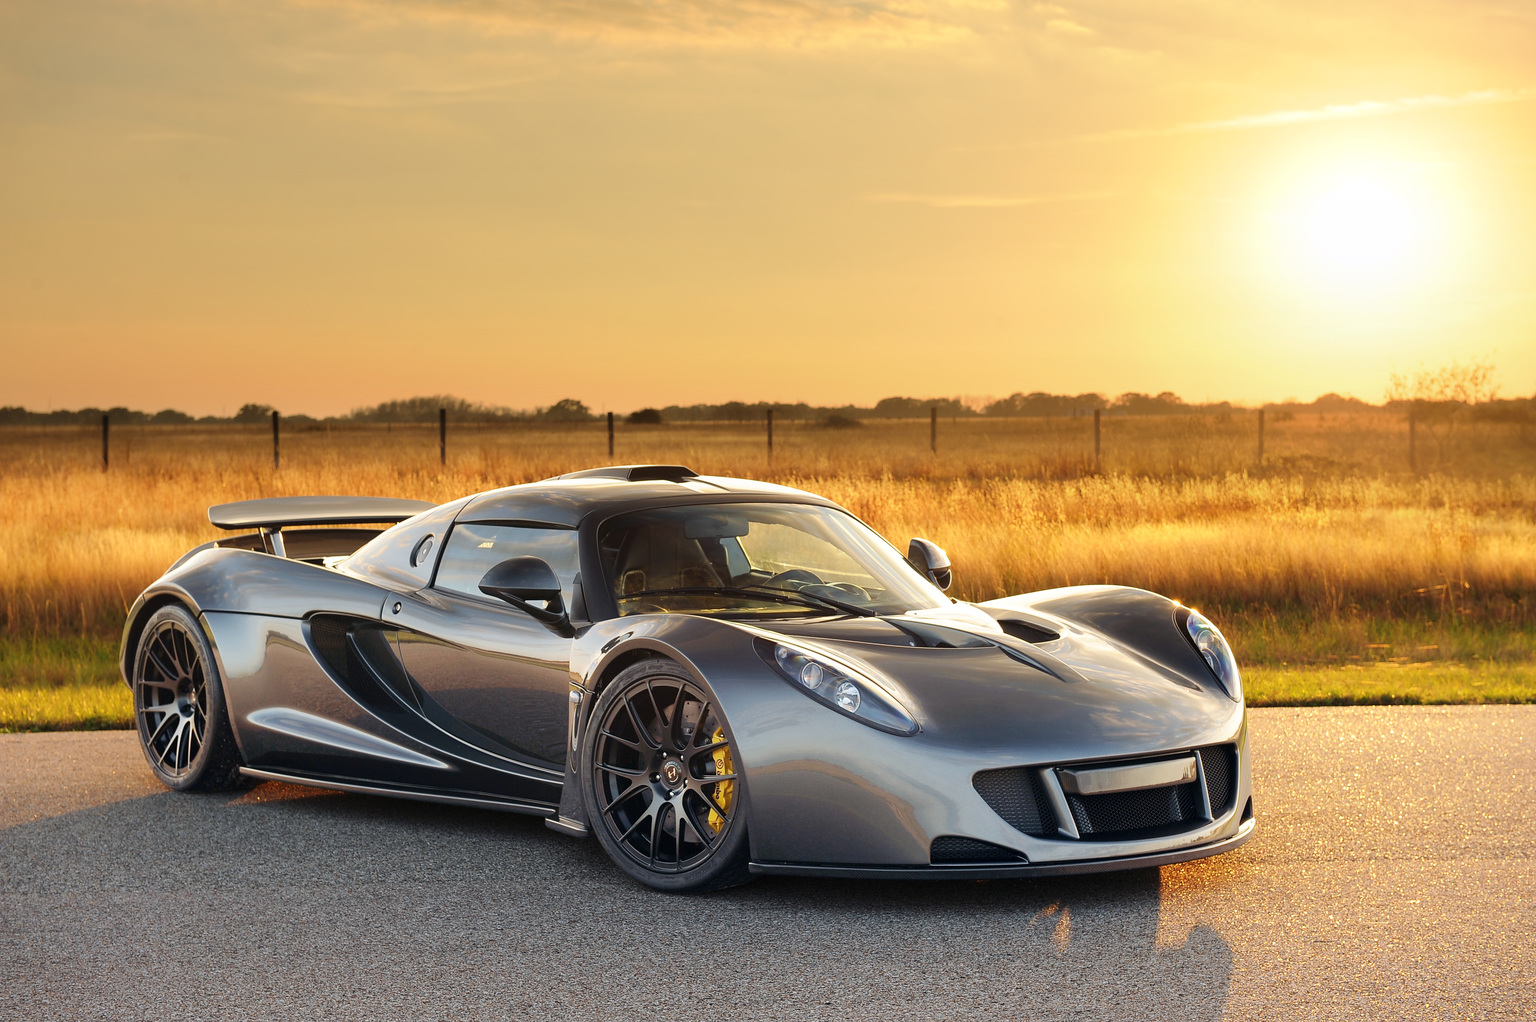 2010 Hennessey Venom Gt Review Supercars Net